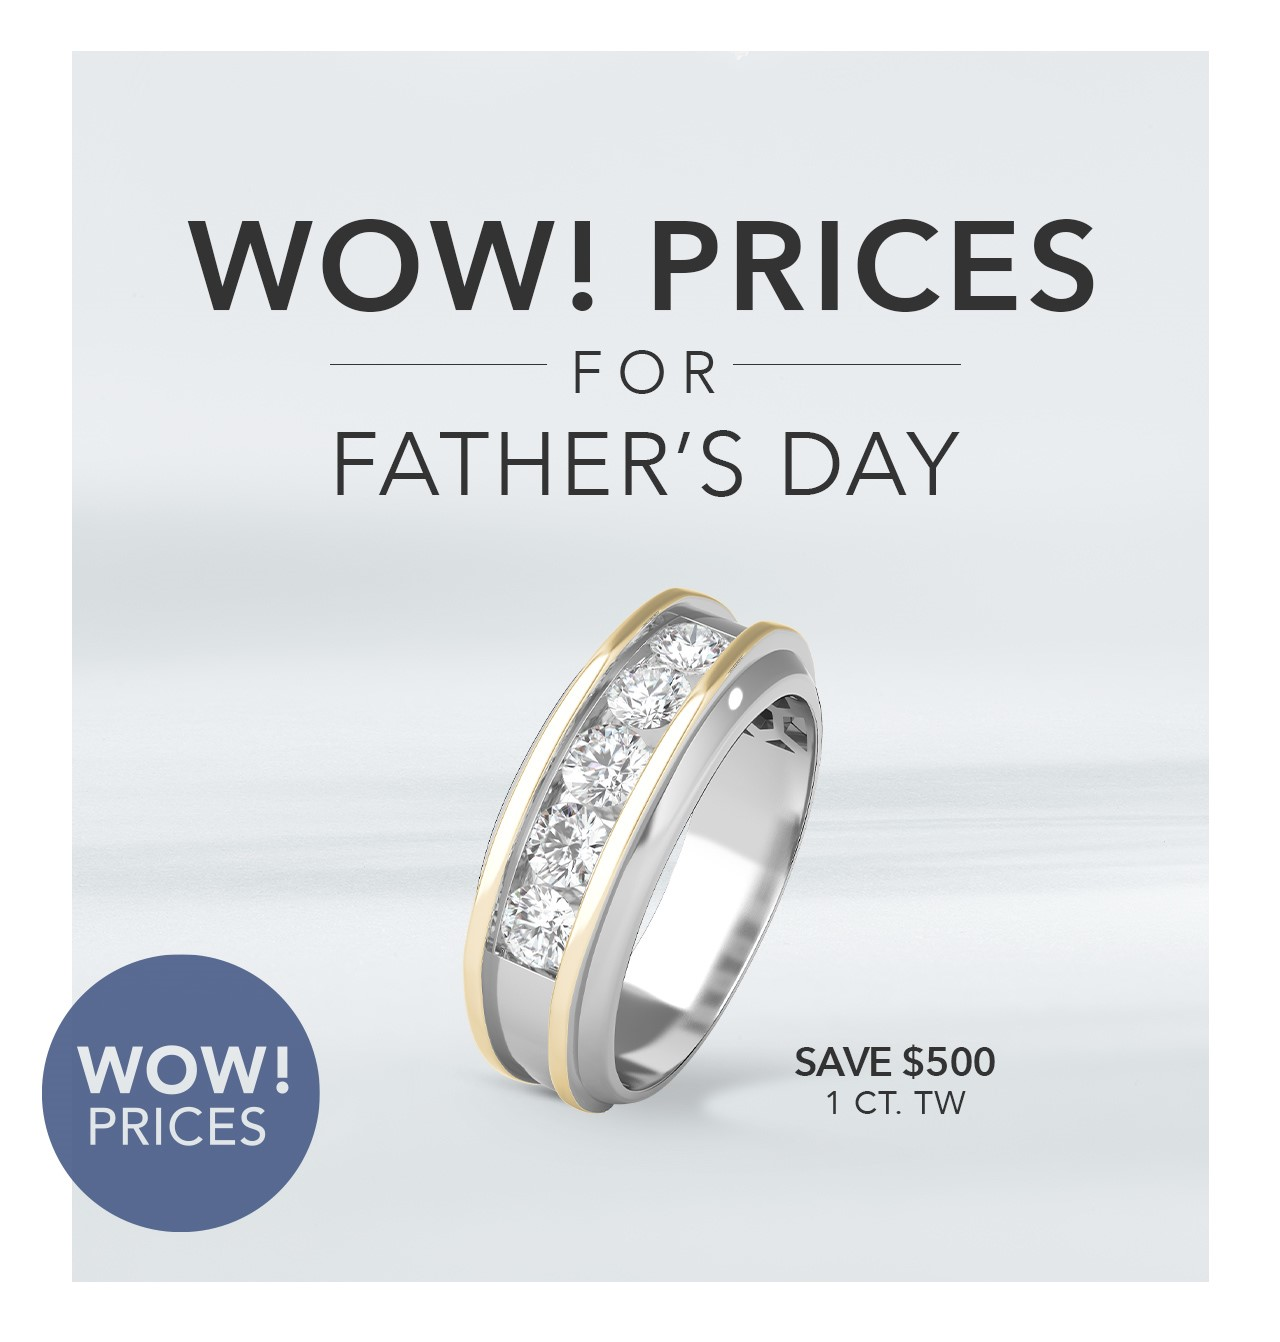 Men's diamond two tone ring shown. Copy: Wow! Prices for Father's Day. Wow! Prices. Save $500 1CT.TW